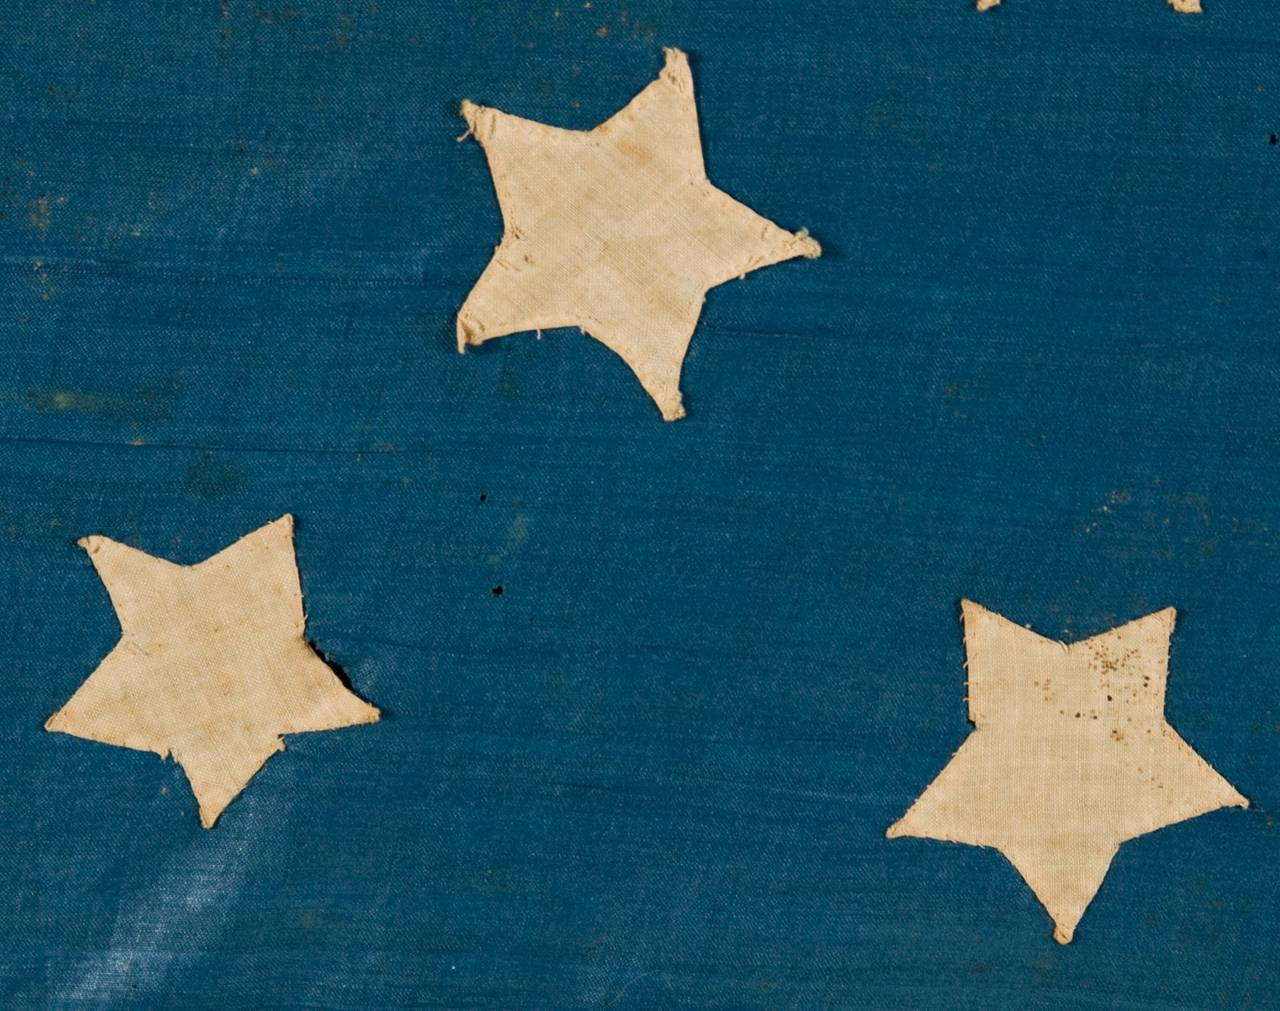 Hand-Crafted Homemade 34 Star Flag, Cornflower Blue, Interesting Configuration, 1861-1863 For Sale